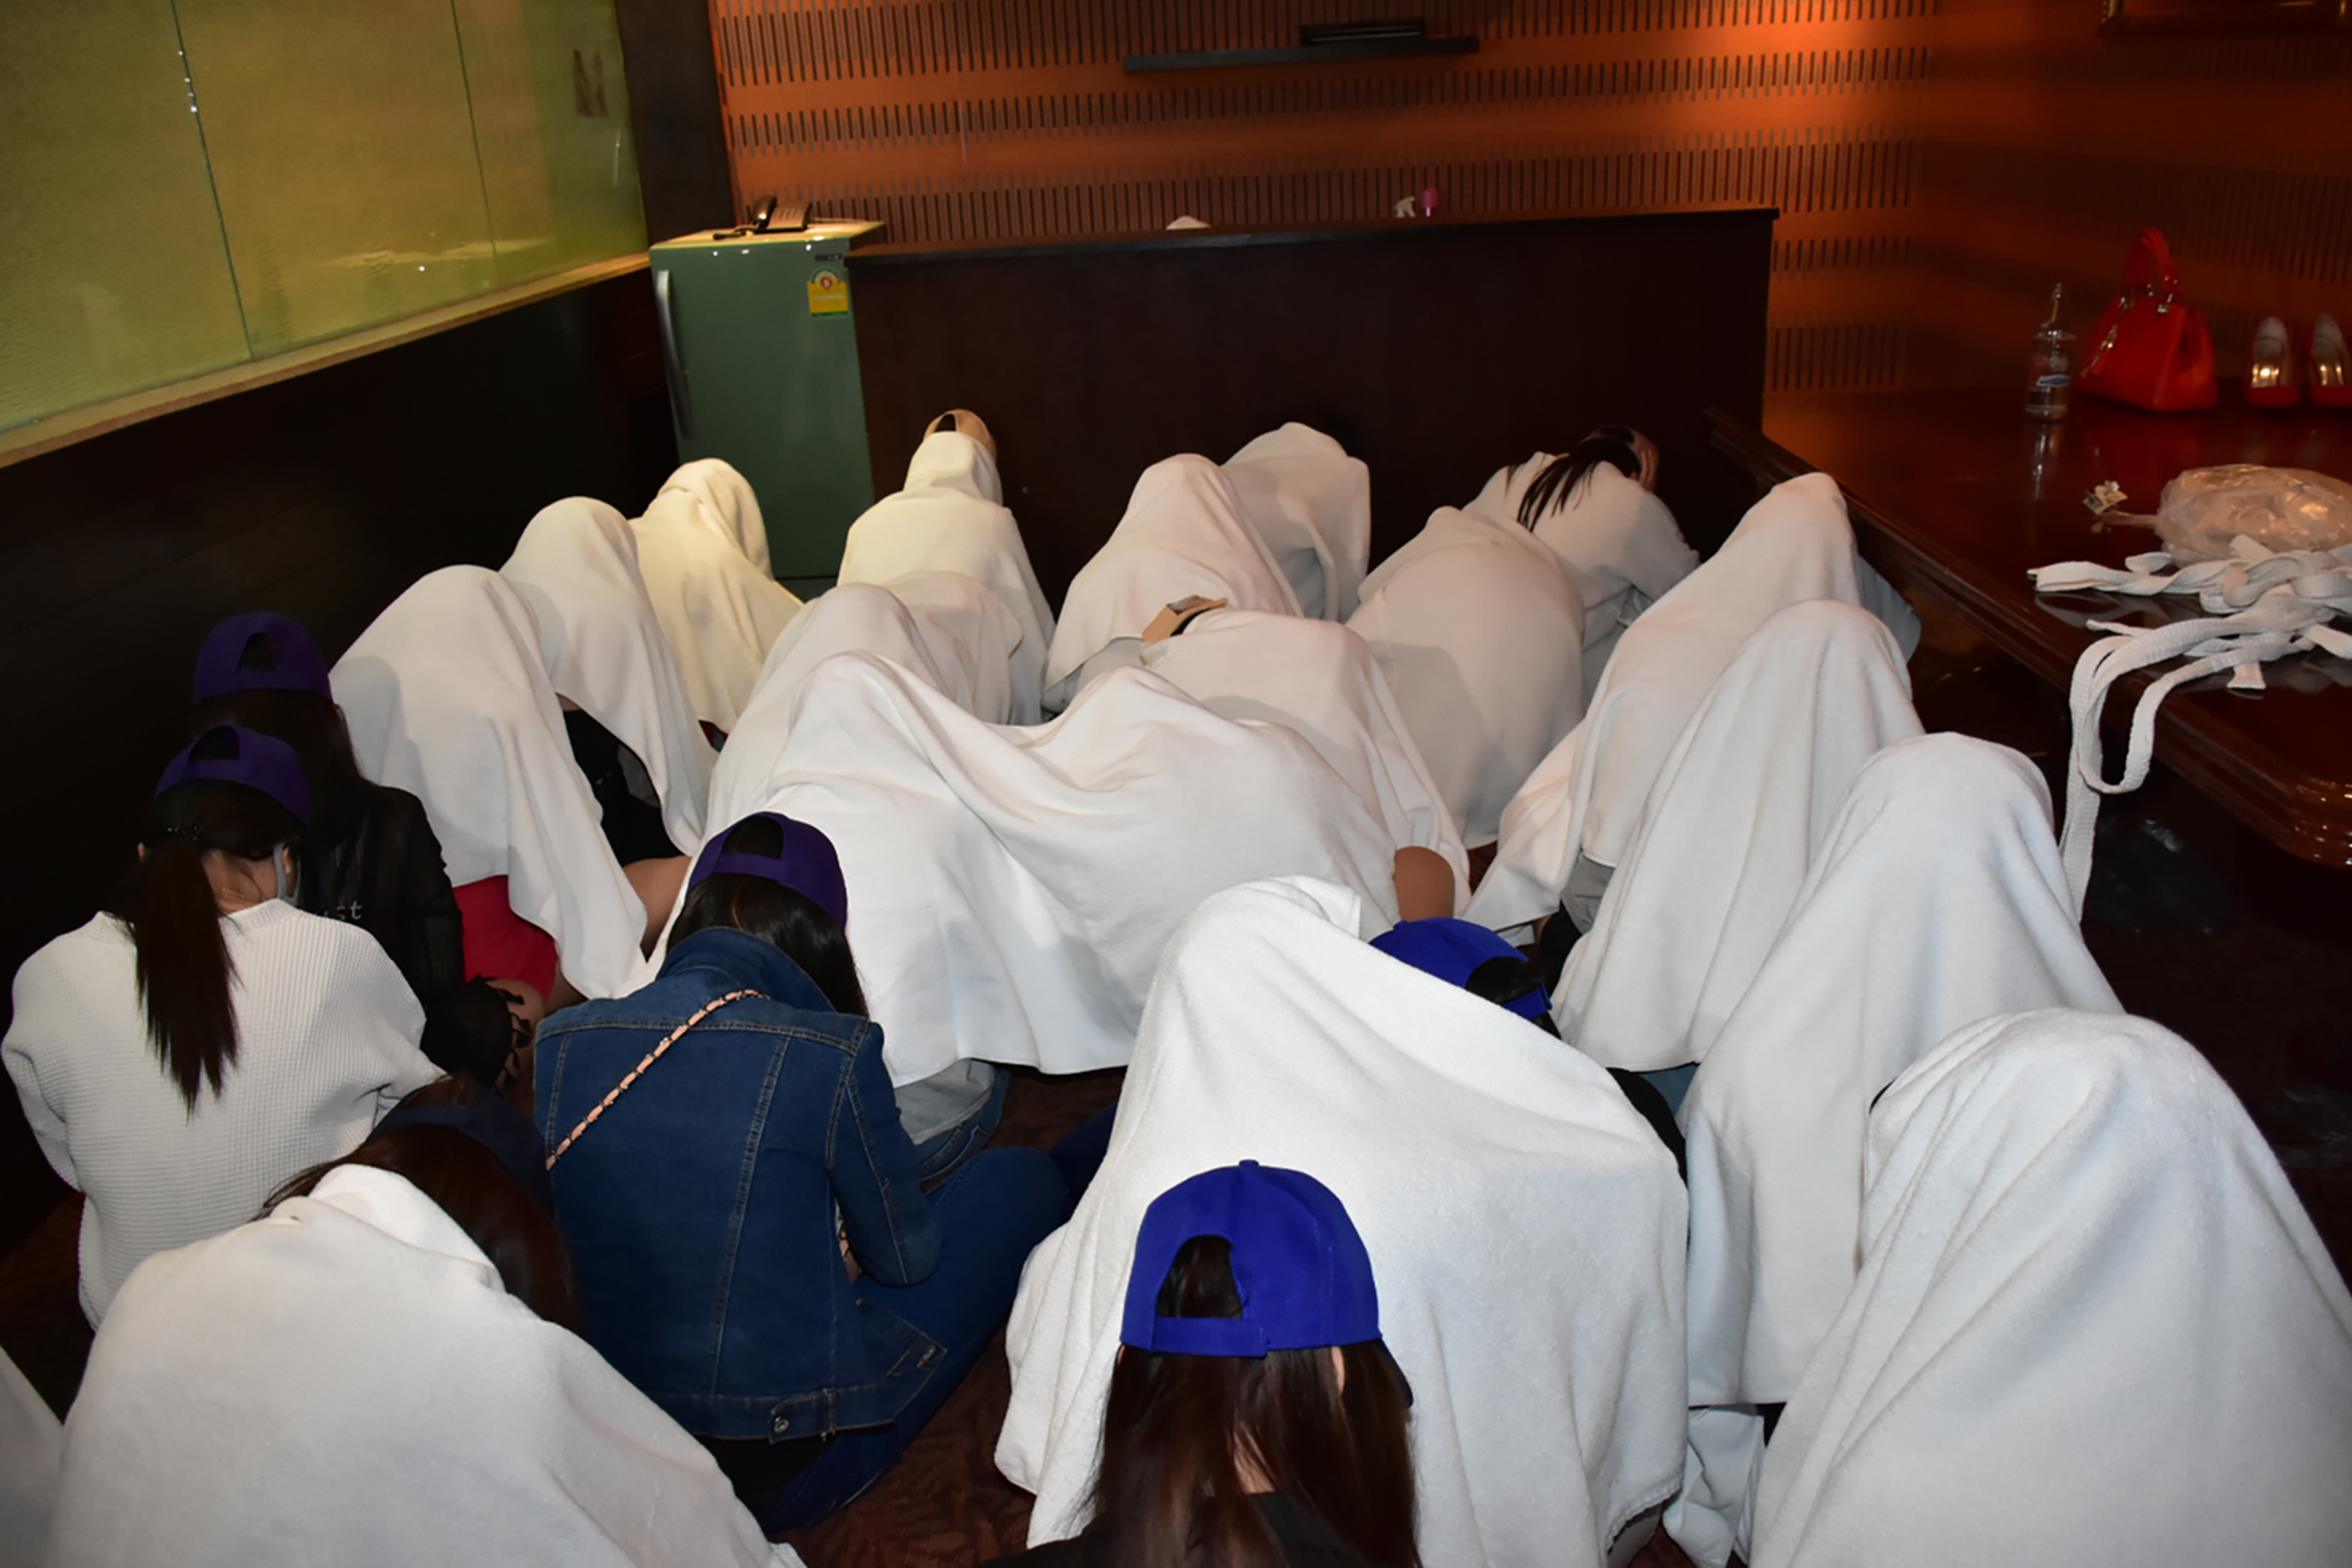 Female workers detained at a massage parlor in Thailand after police raided the premises on suspicions of underage trafficking and prostitution.